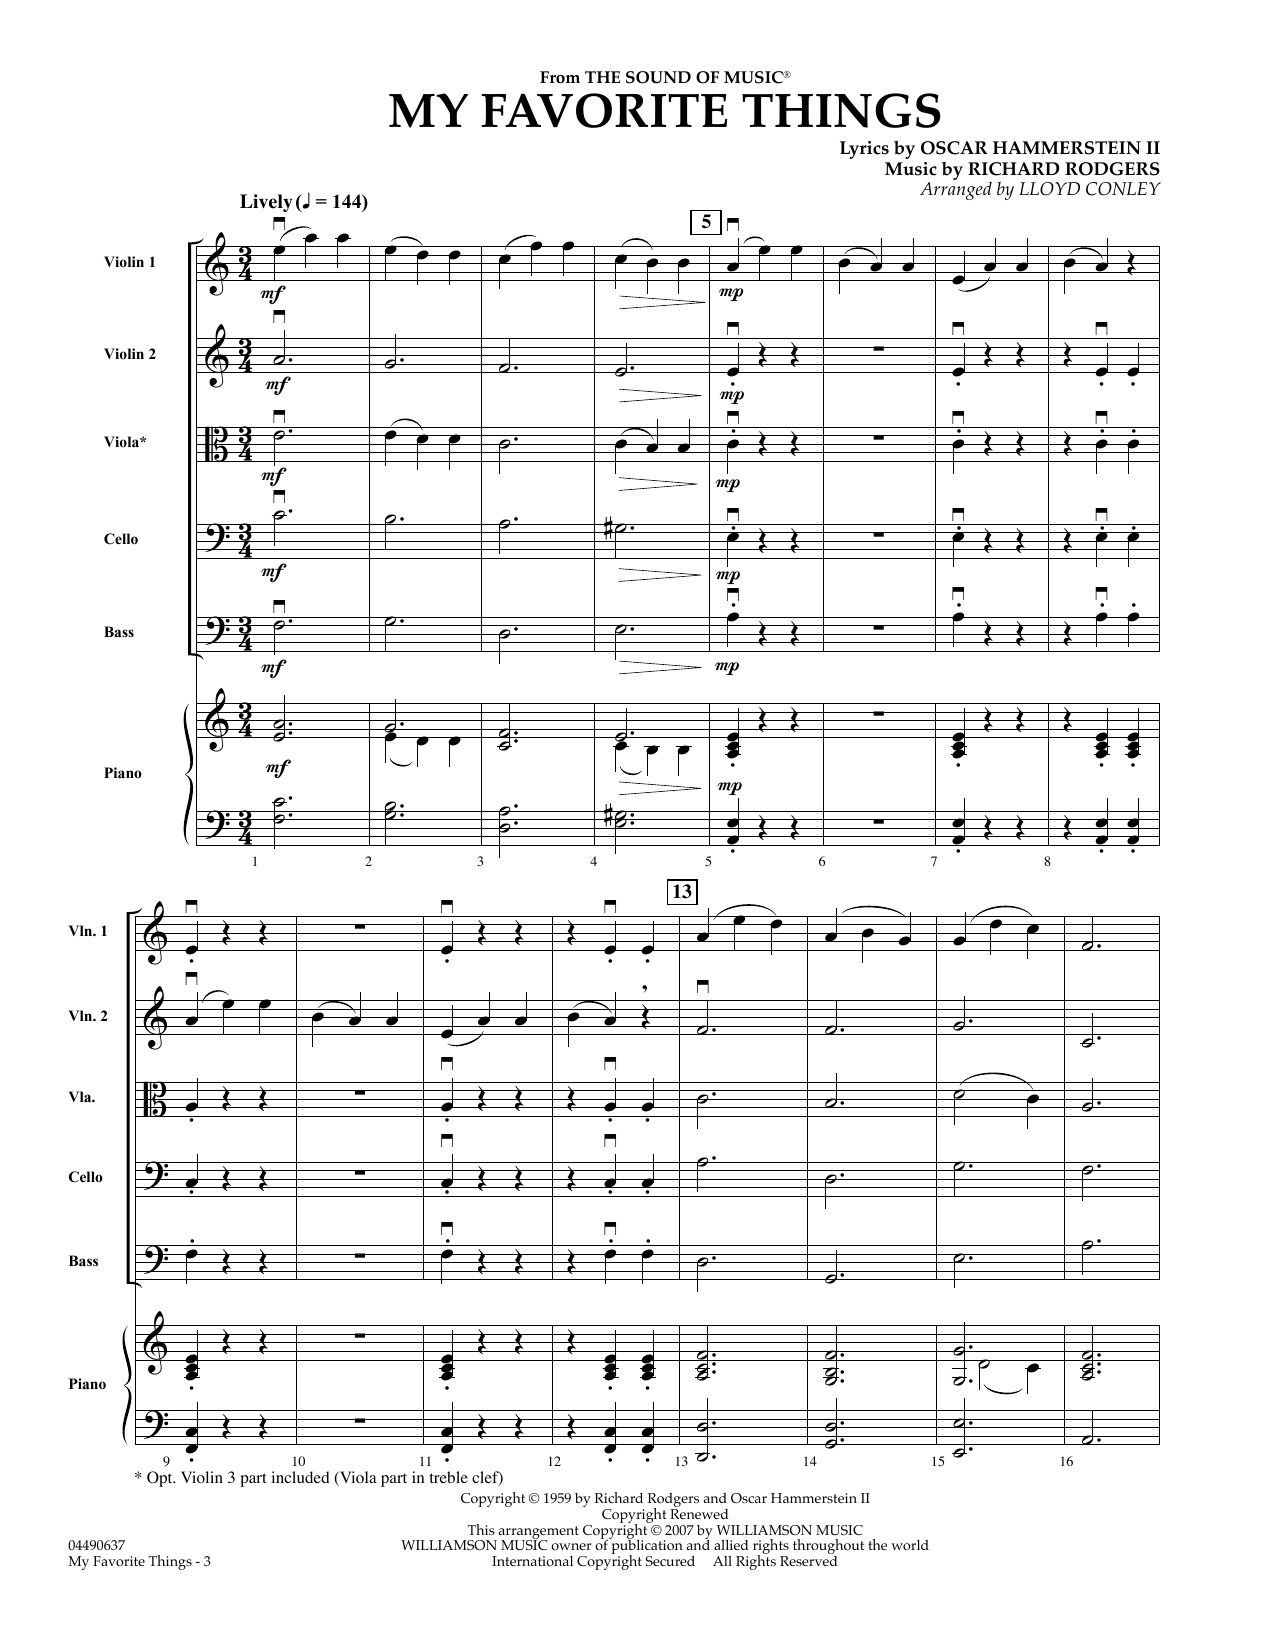 My Favorite Things (COMPLETE) sheet music for orchestra by Richard Rodgers